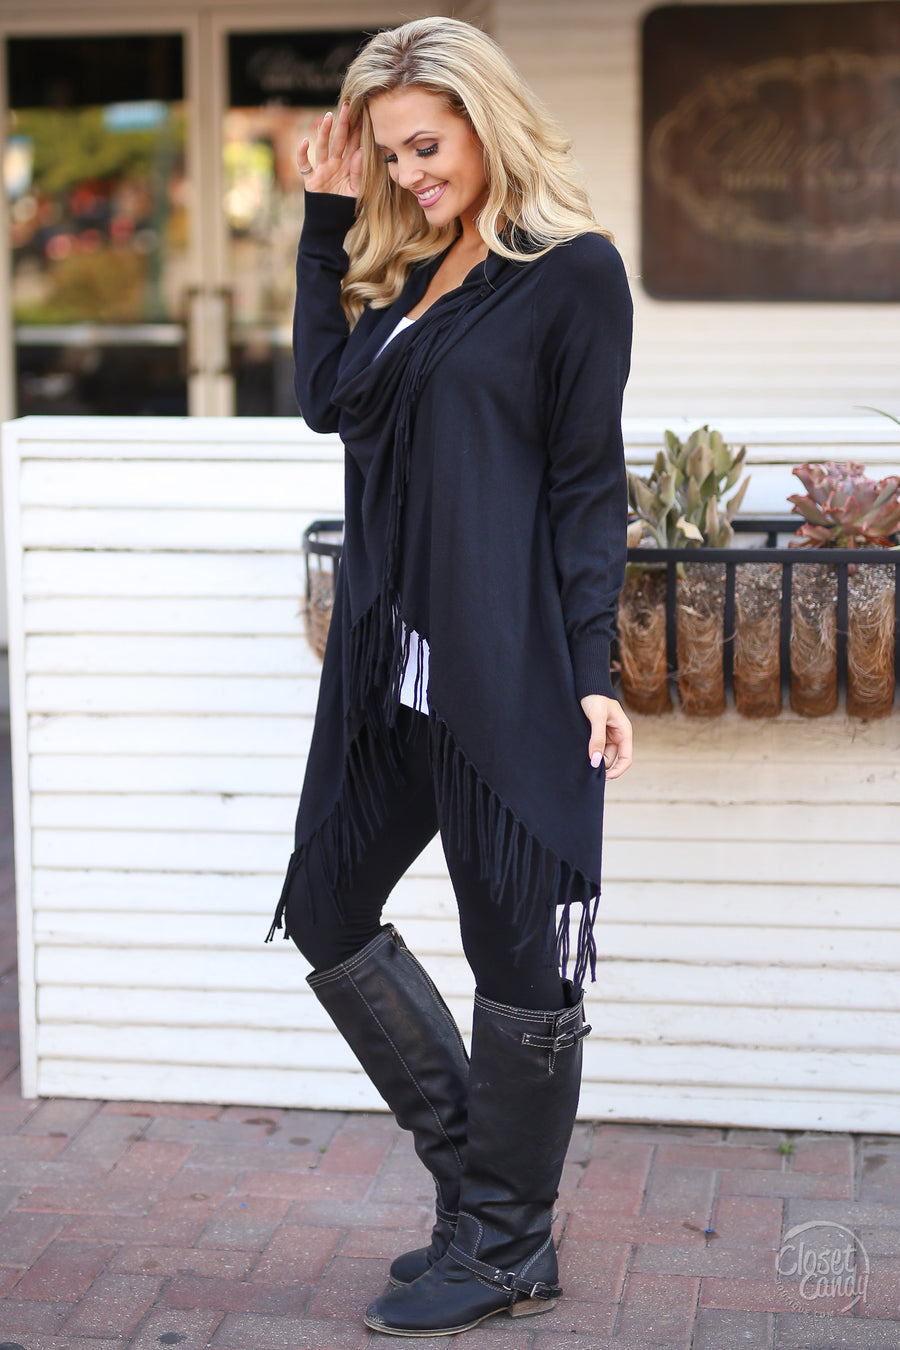 Wildfire Fringe Cardigan - Black fringe hem wrap cardigan, front, Closet Candy Boutique 1